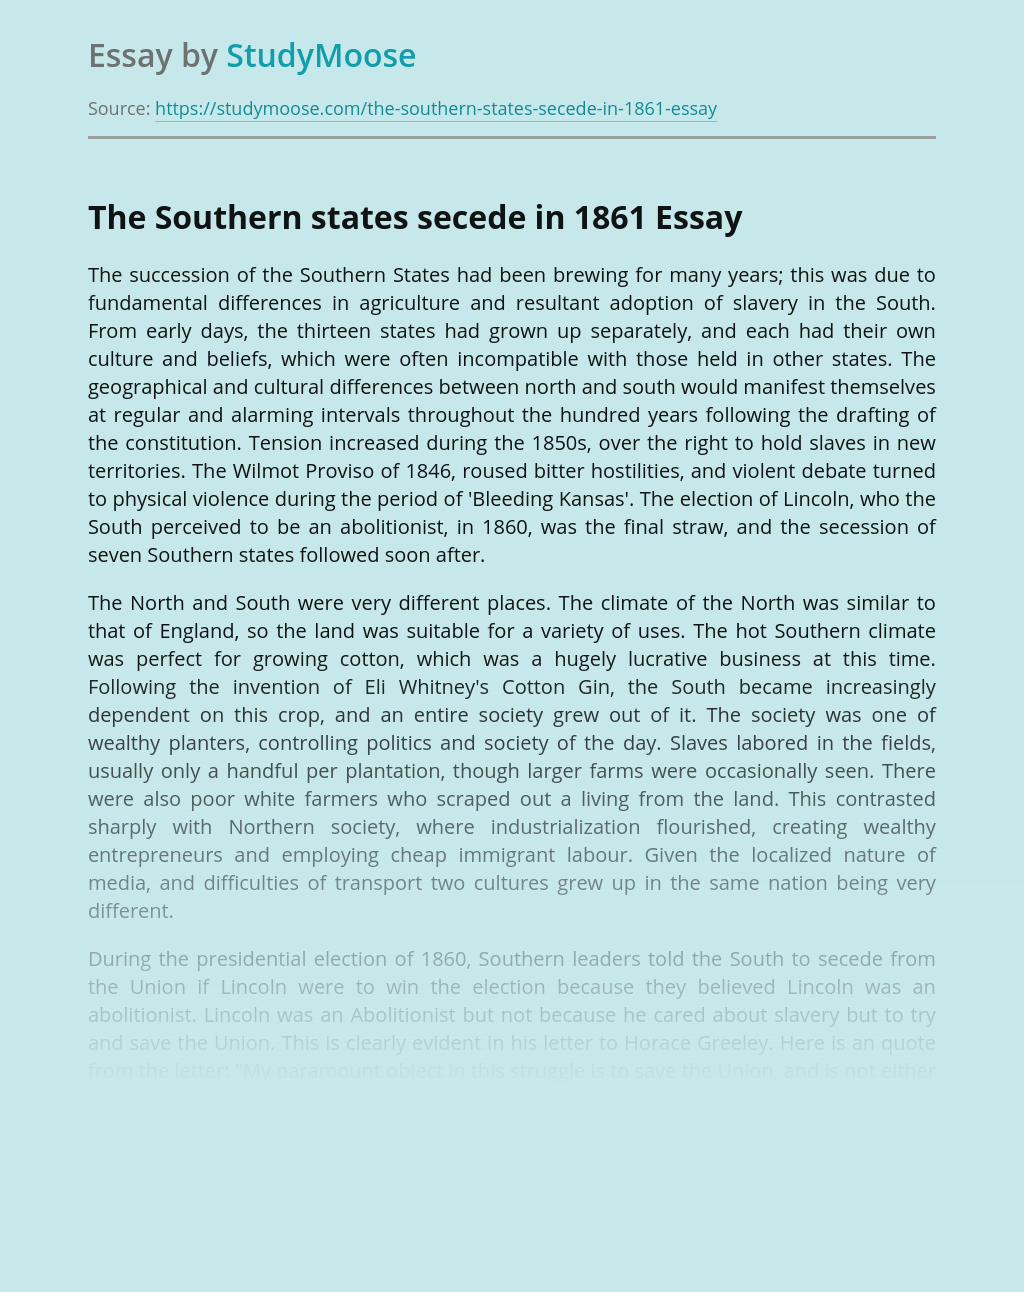 The Southern states secede in 1861